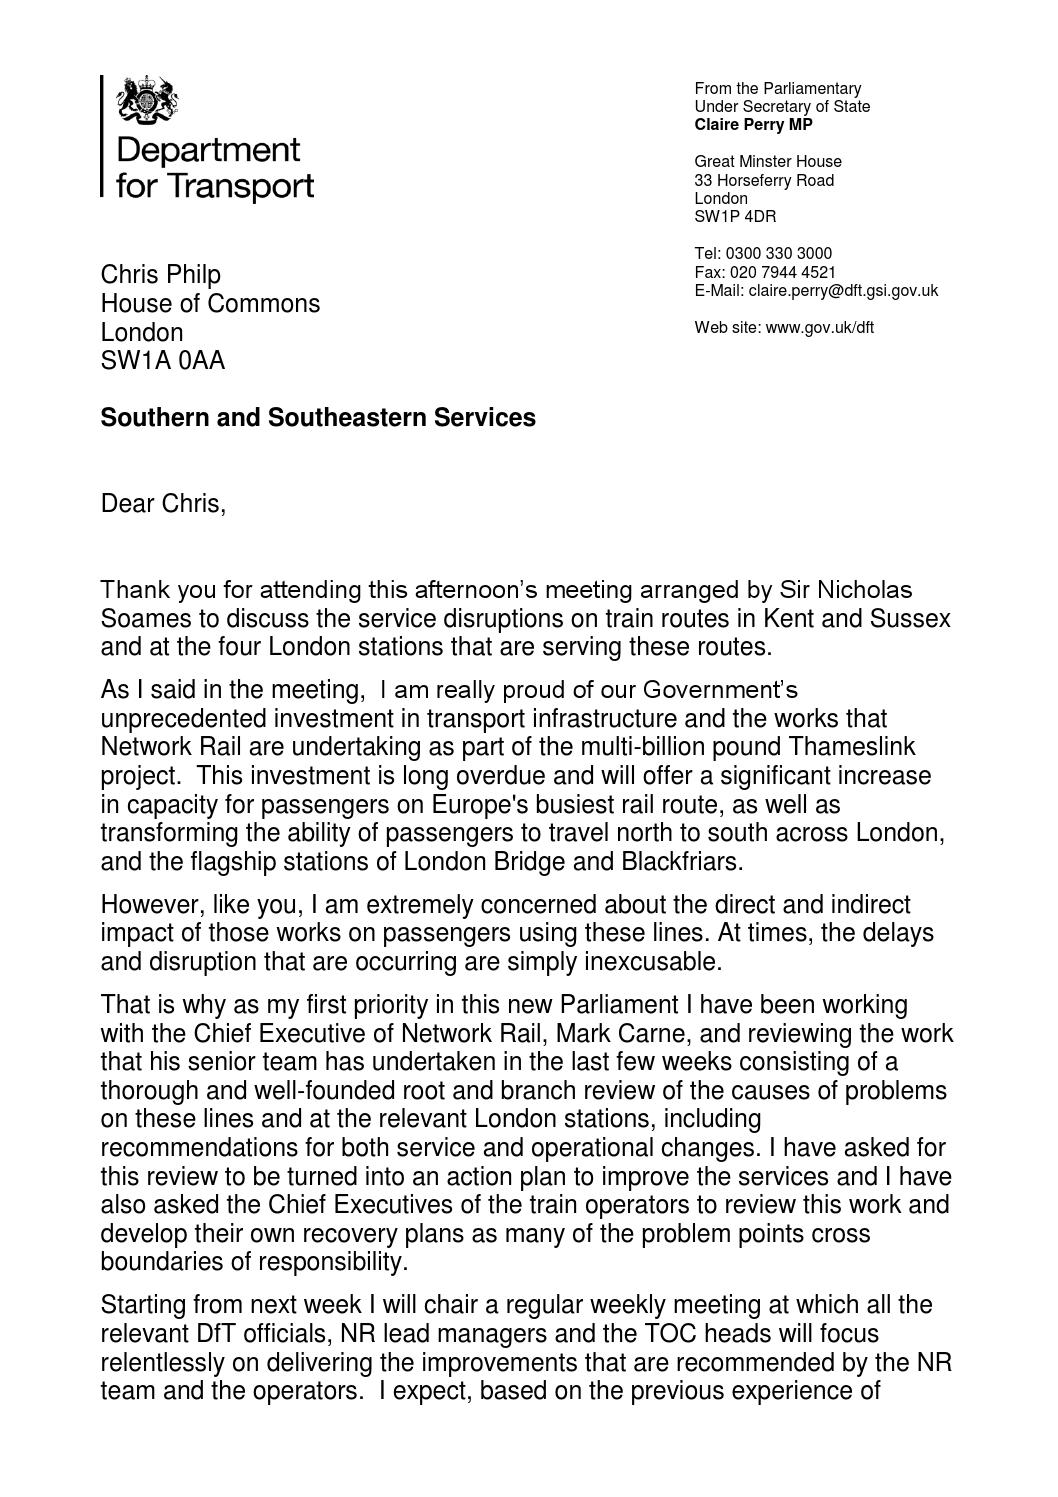 letter from claire perry by chris philp mp - issuu